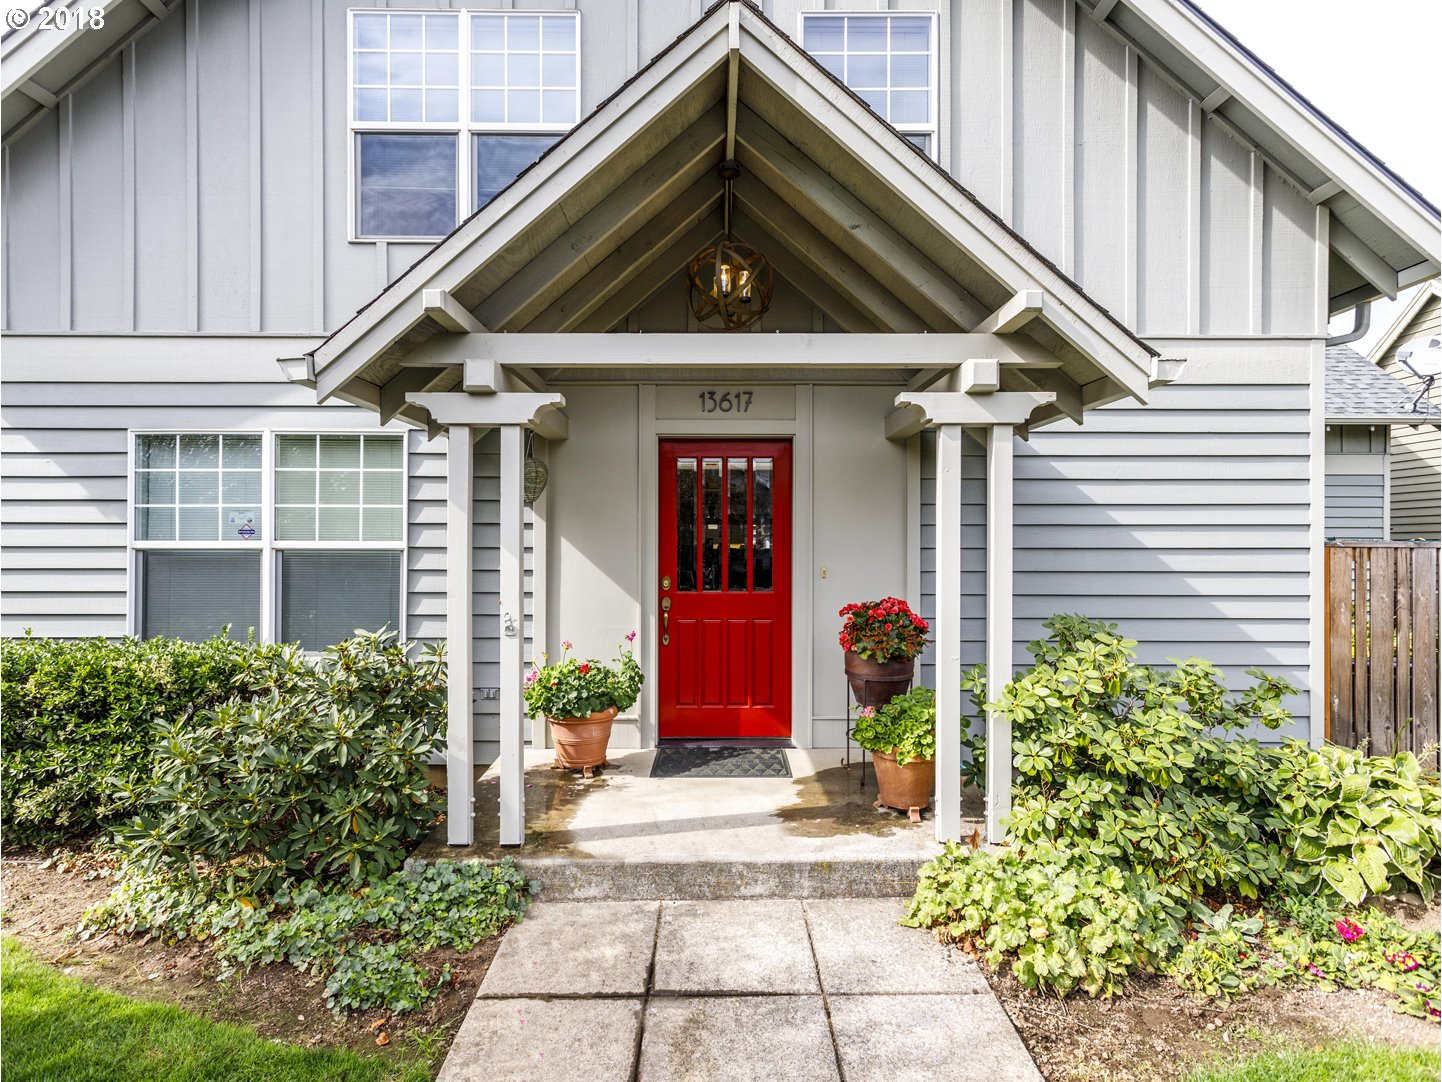 1658 sq. ft 3 bedrooms 2 bathrooms  House For Sale,Portland, OR